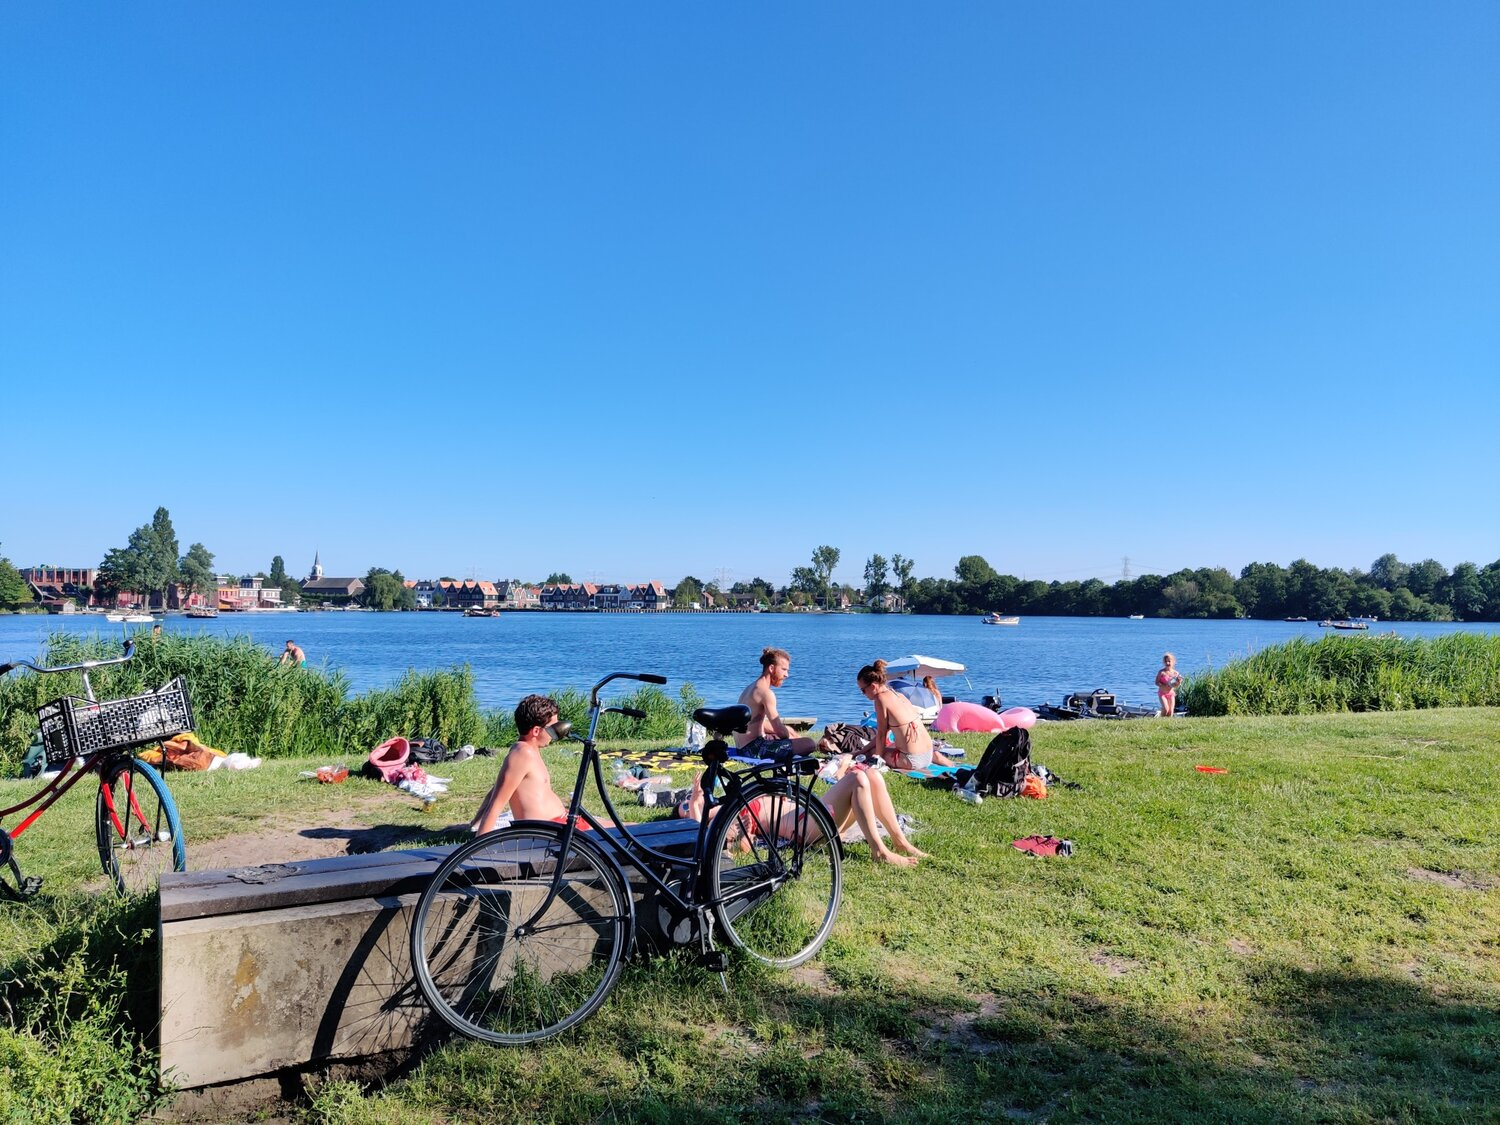 A 15km route with 35+ degrees to enjoy a rare sunny day in the Netherlands. Check the route!